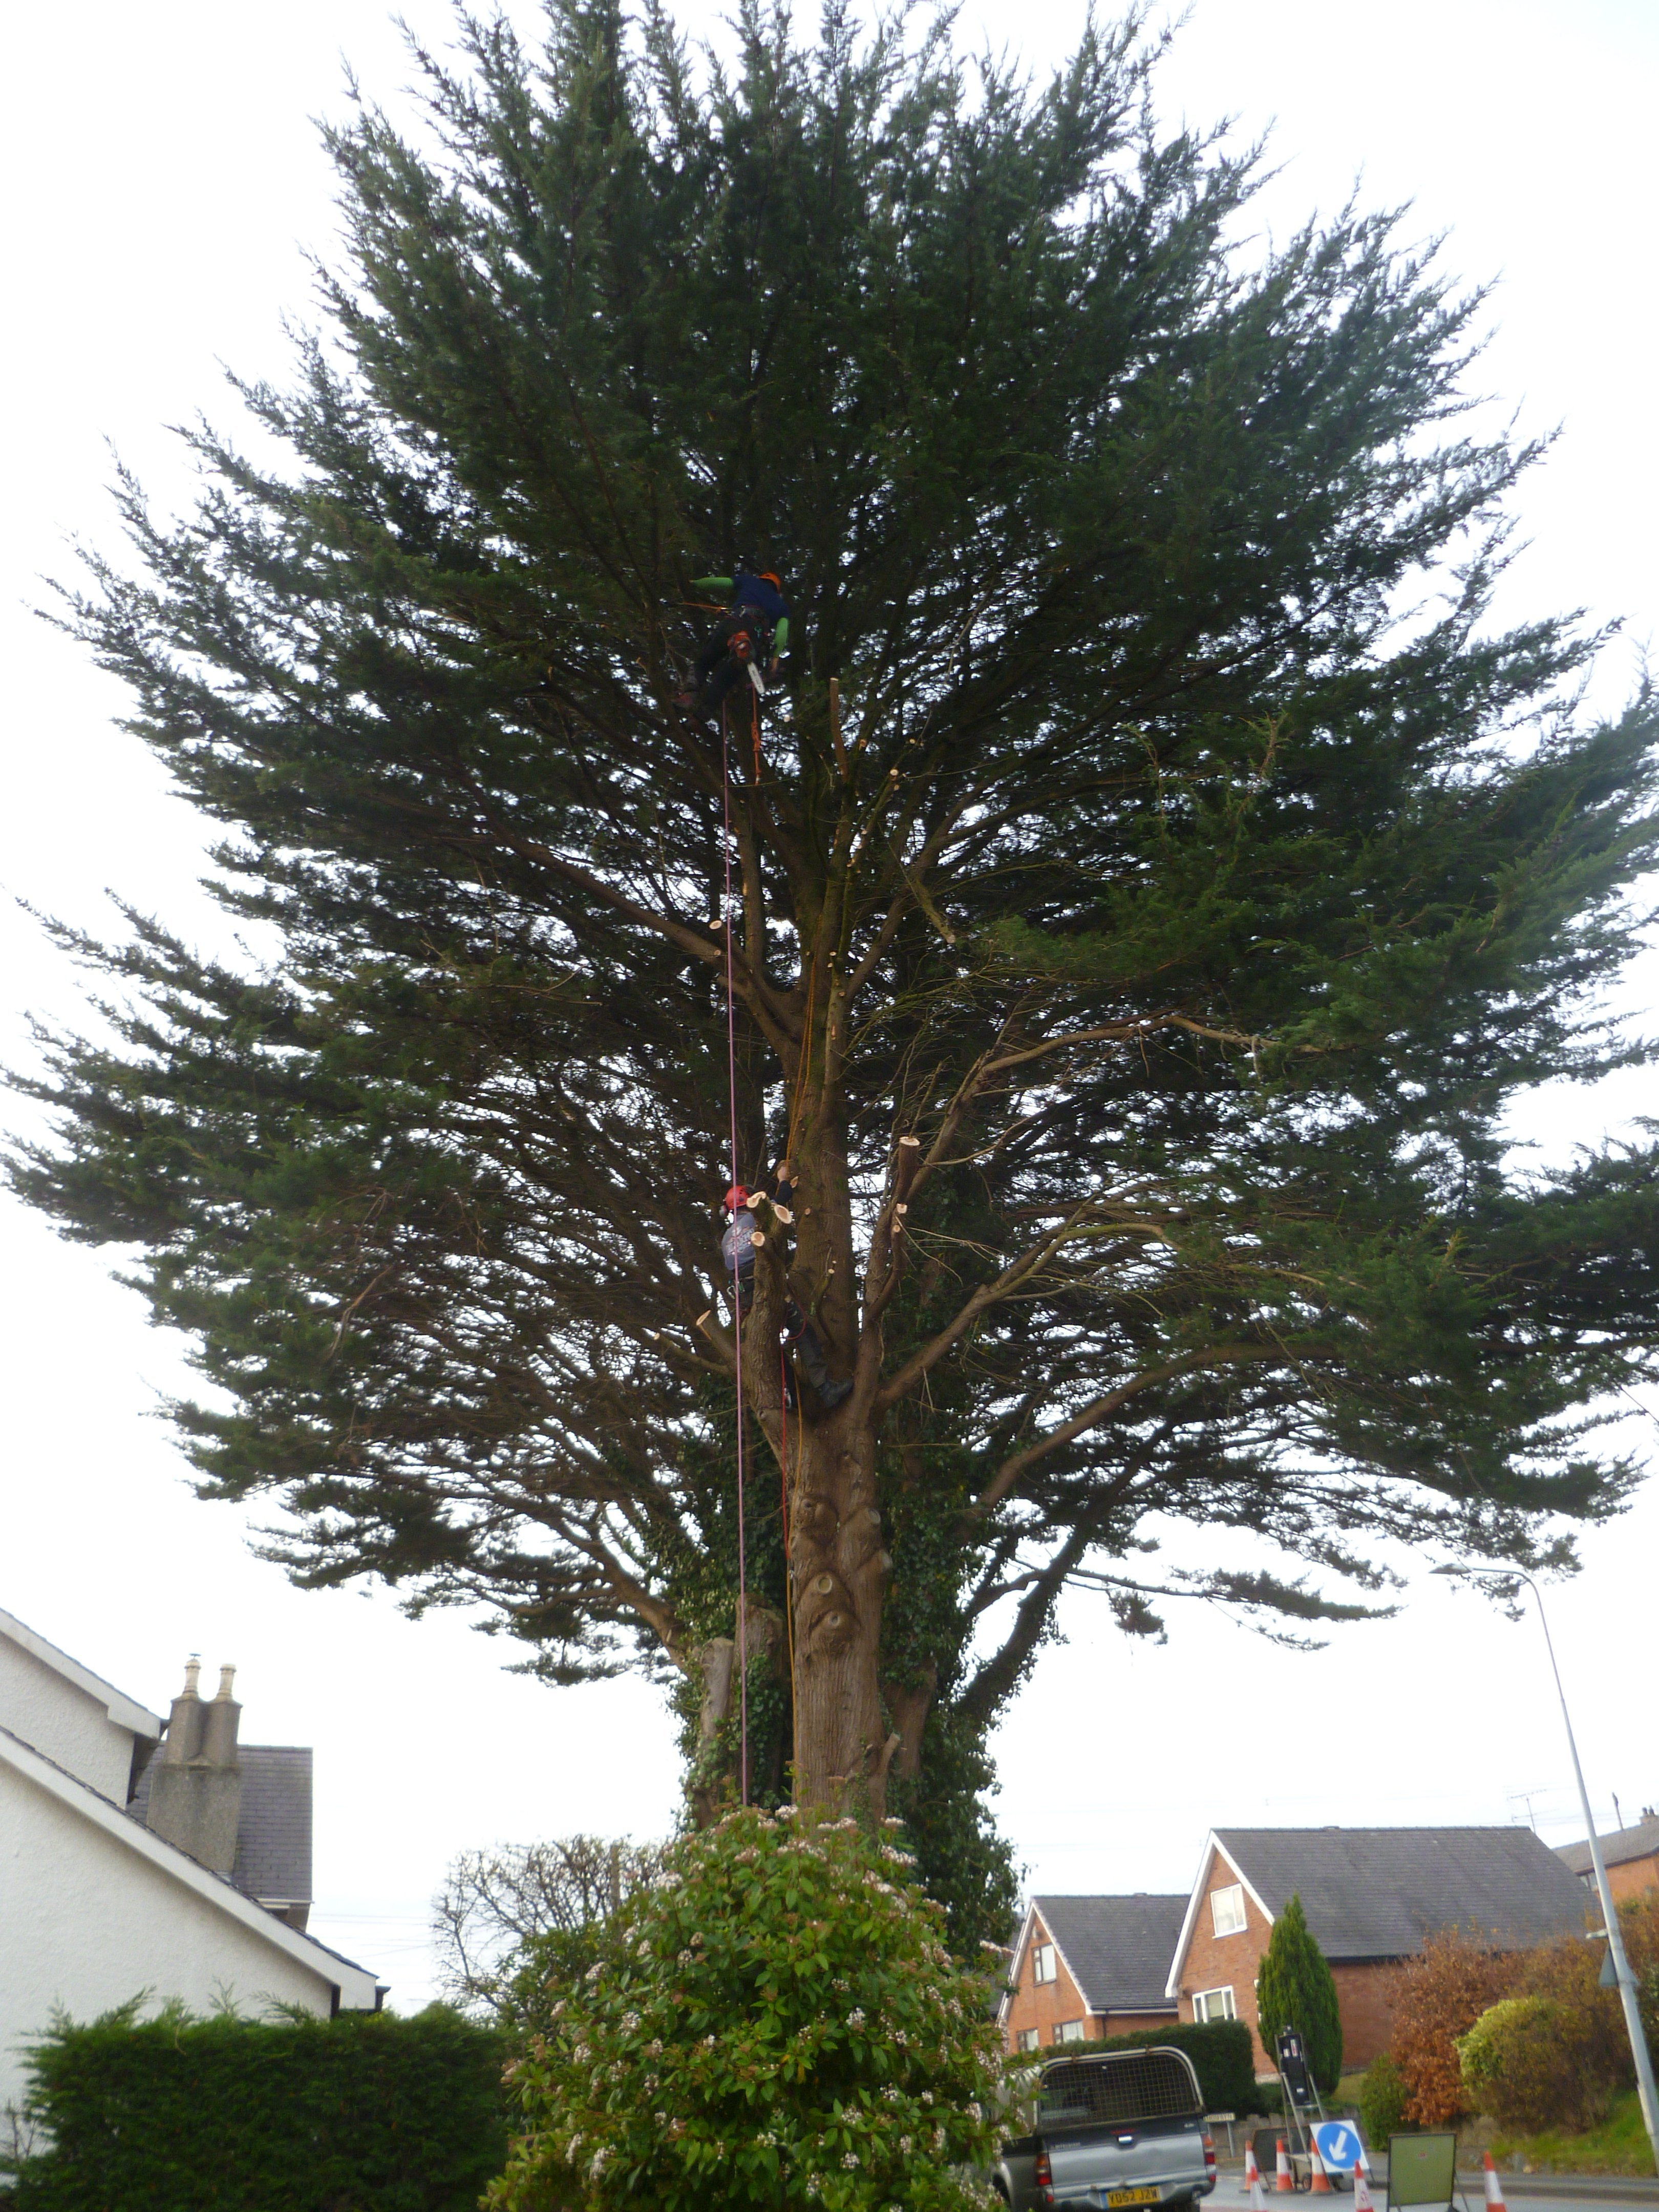 There is a tree surgeon in tha Macrocarpa tree somewhere.